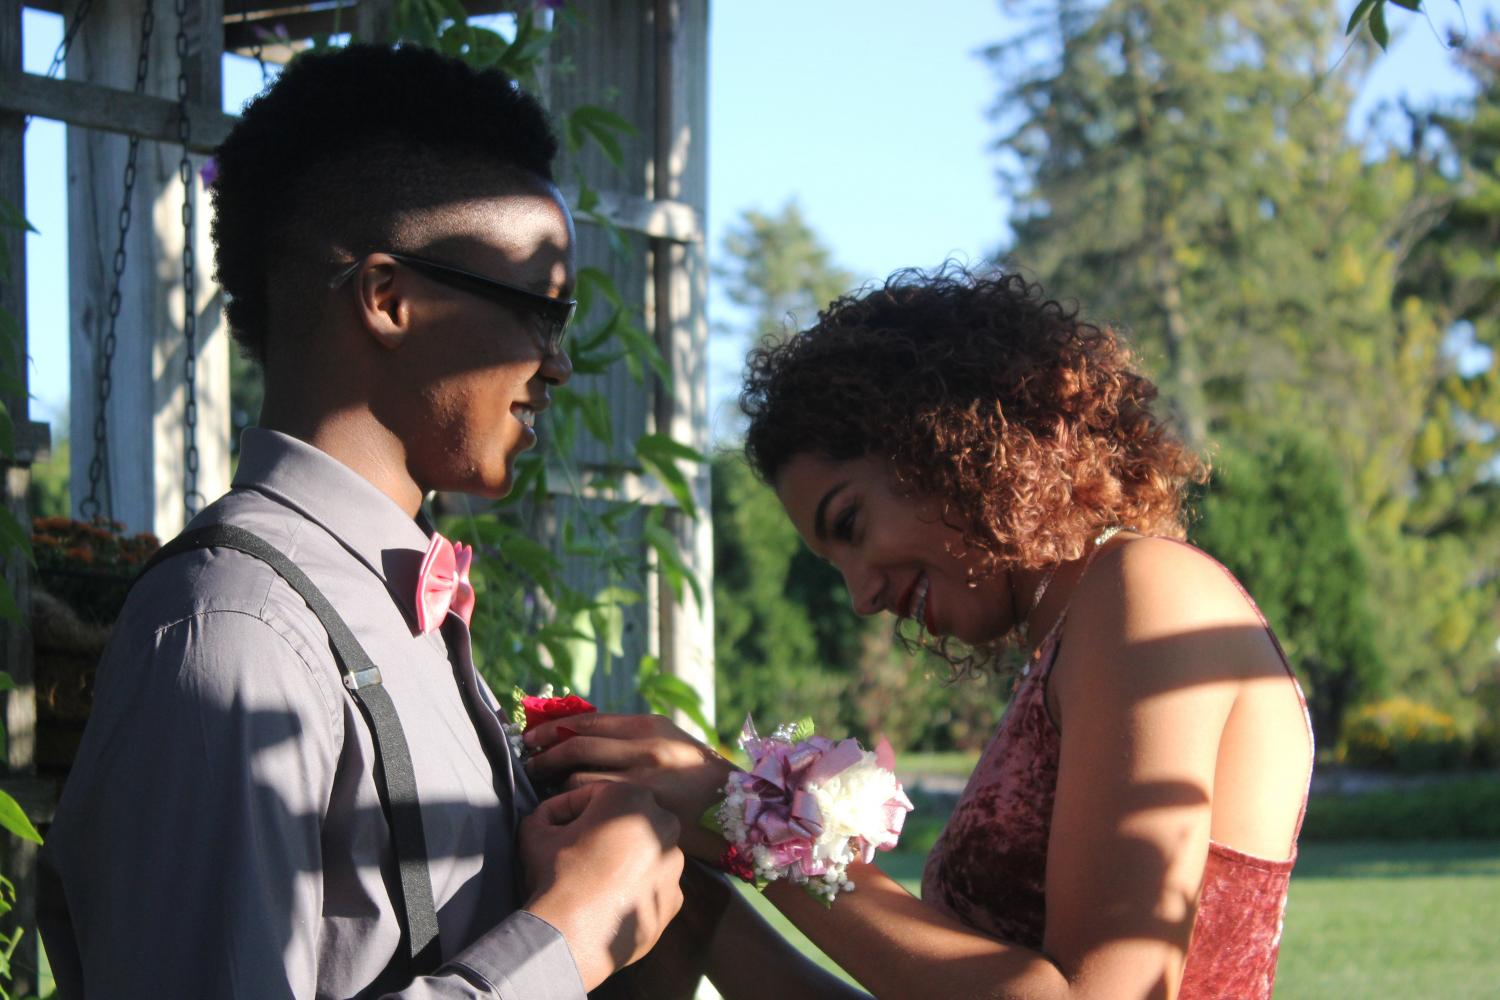 Sophomore, Kayla Morris has a laughing moment with sophomore, Jairi Walker while pinning his boutonniere.